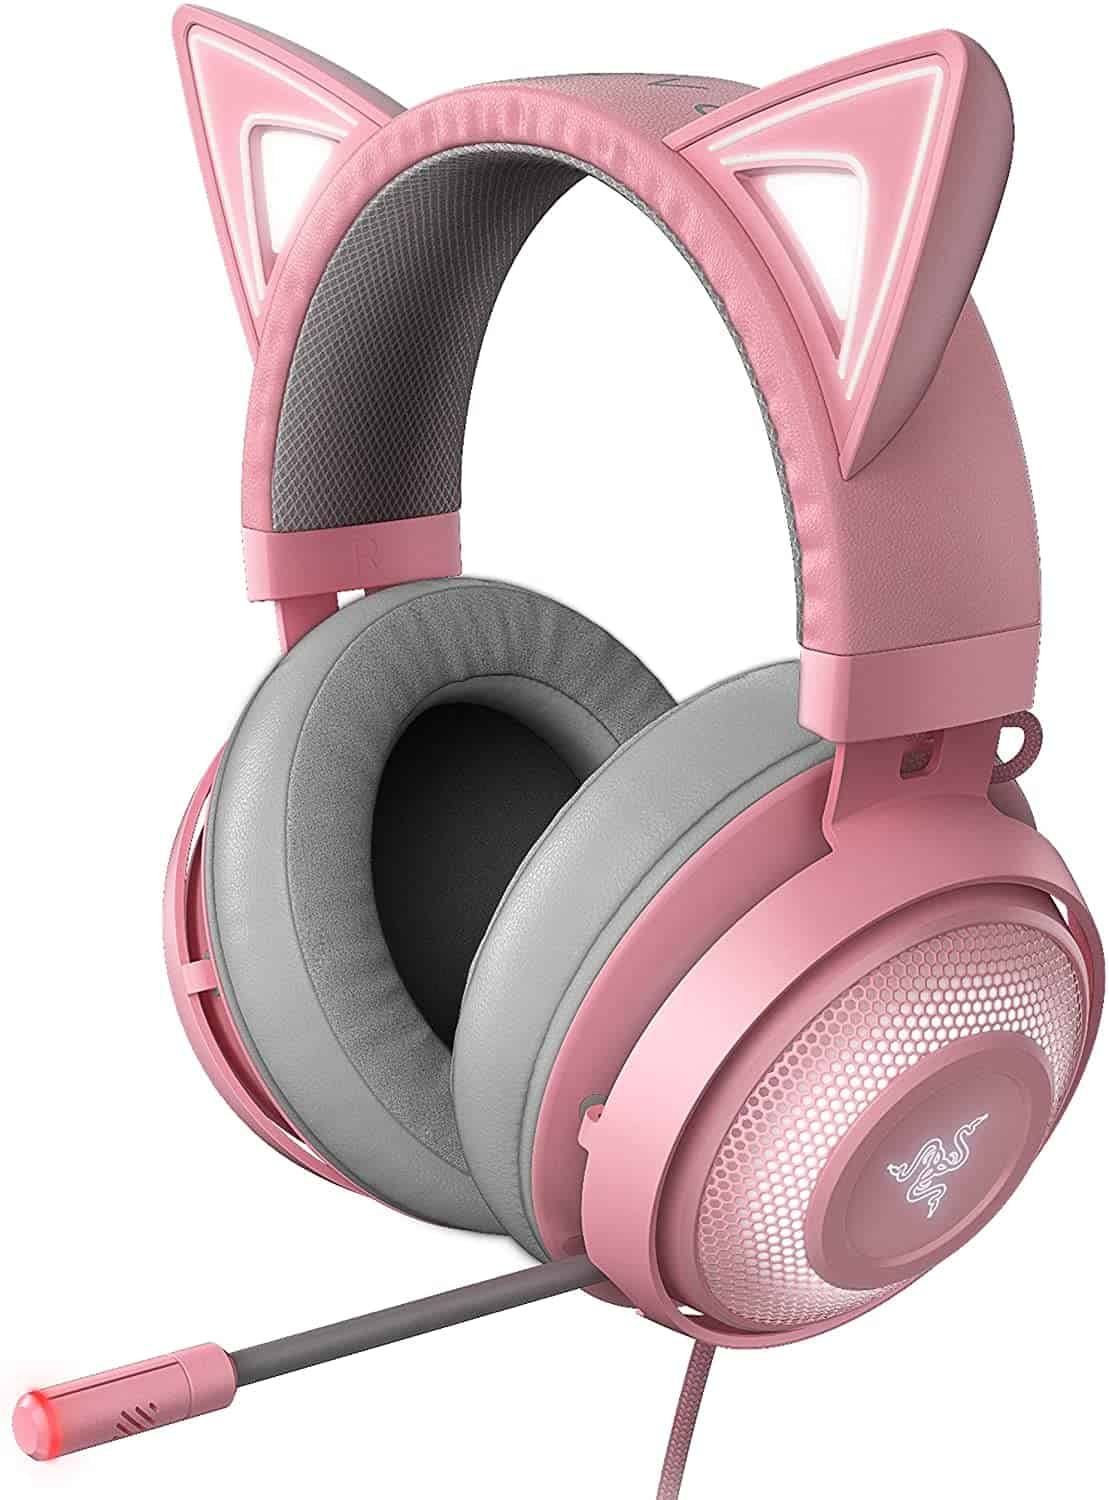 Razer Kraken Kitty Gaming Headphones